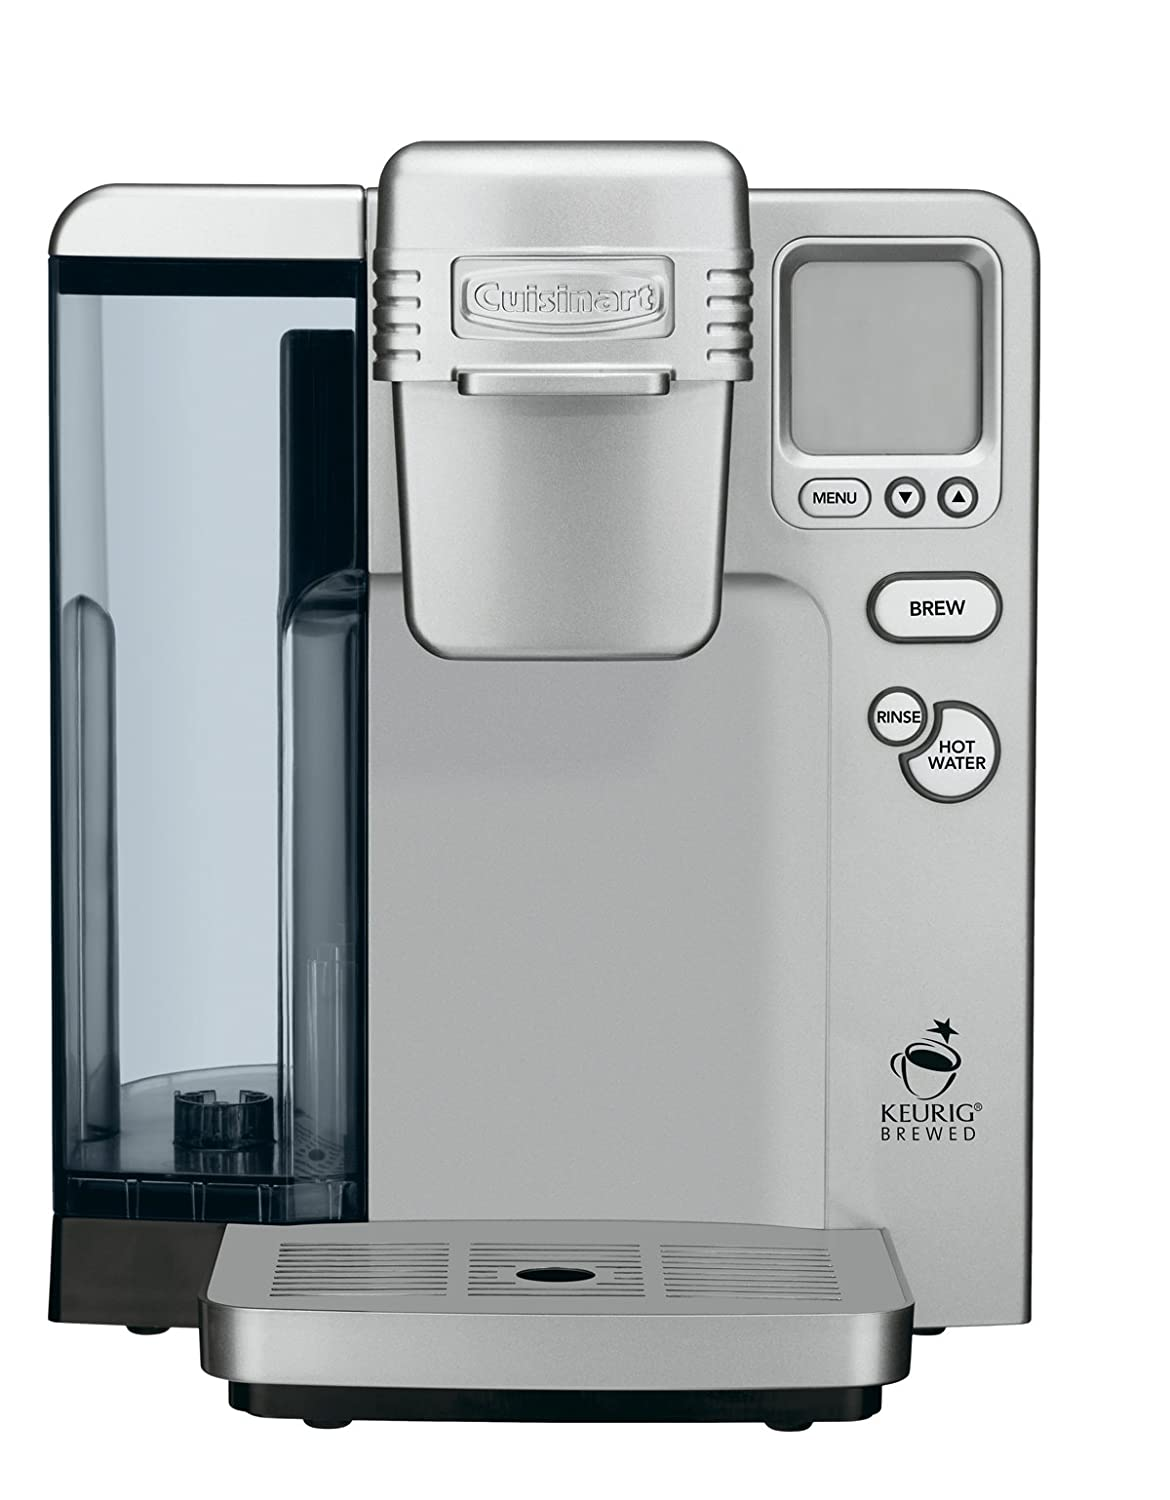 Amazoncom Cuisinart Ss 700 Single Serve Brewing System Silver